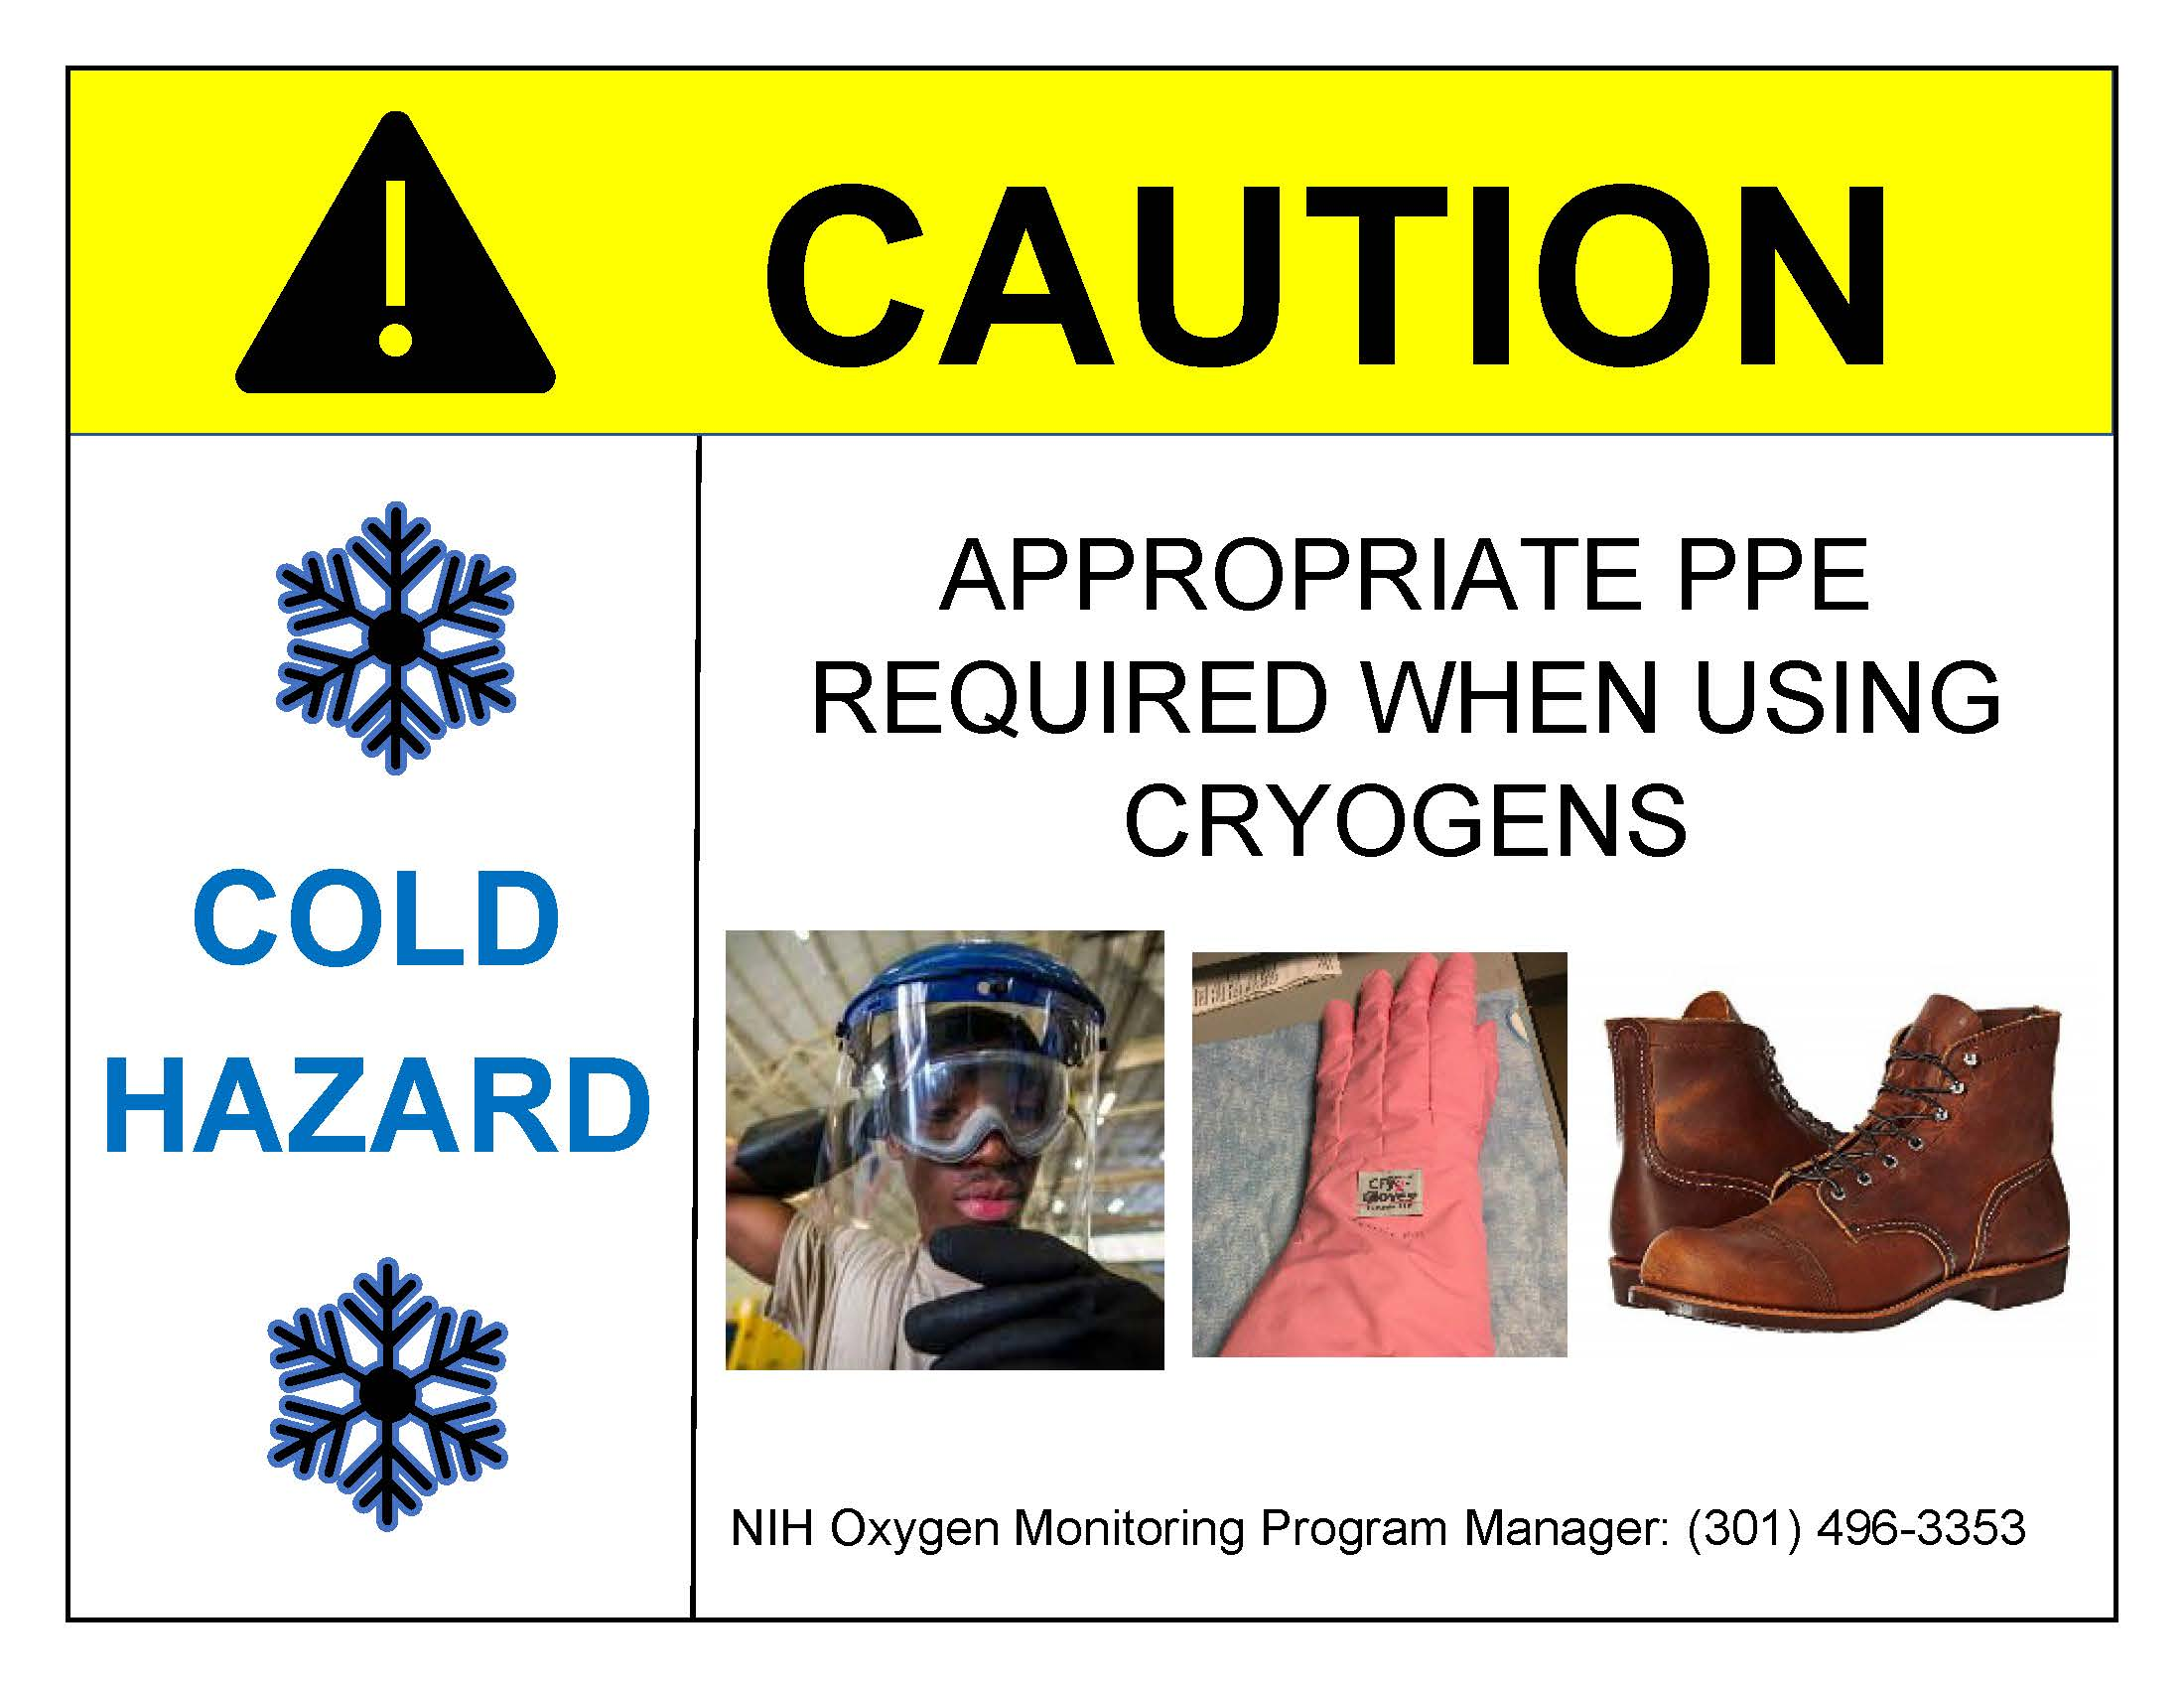 Caution Appropriate PPE Required When Using Cryogens Sign